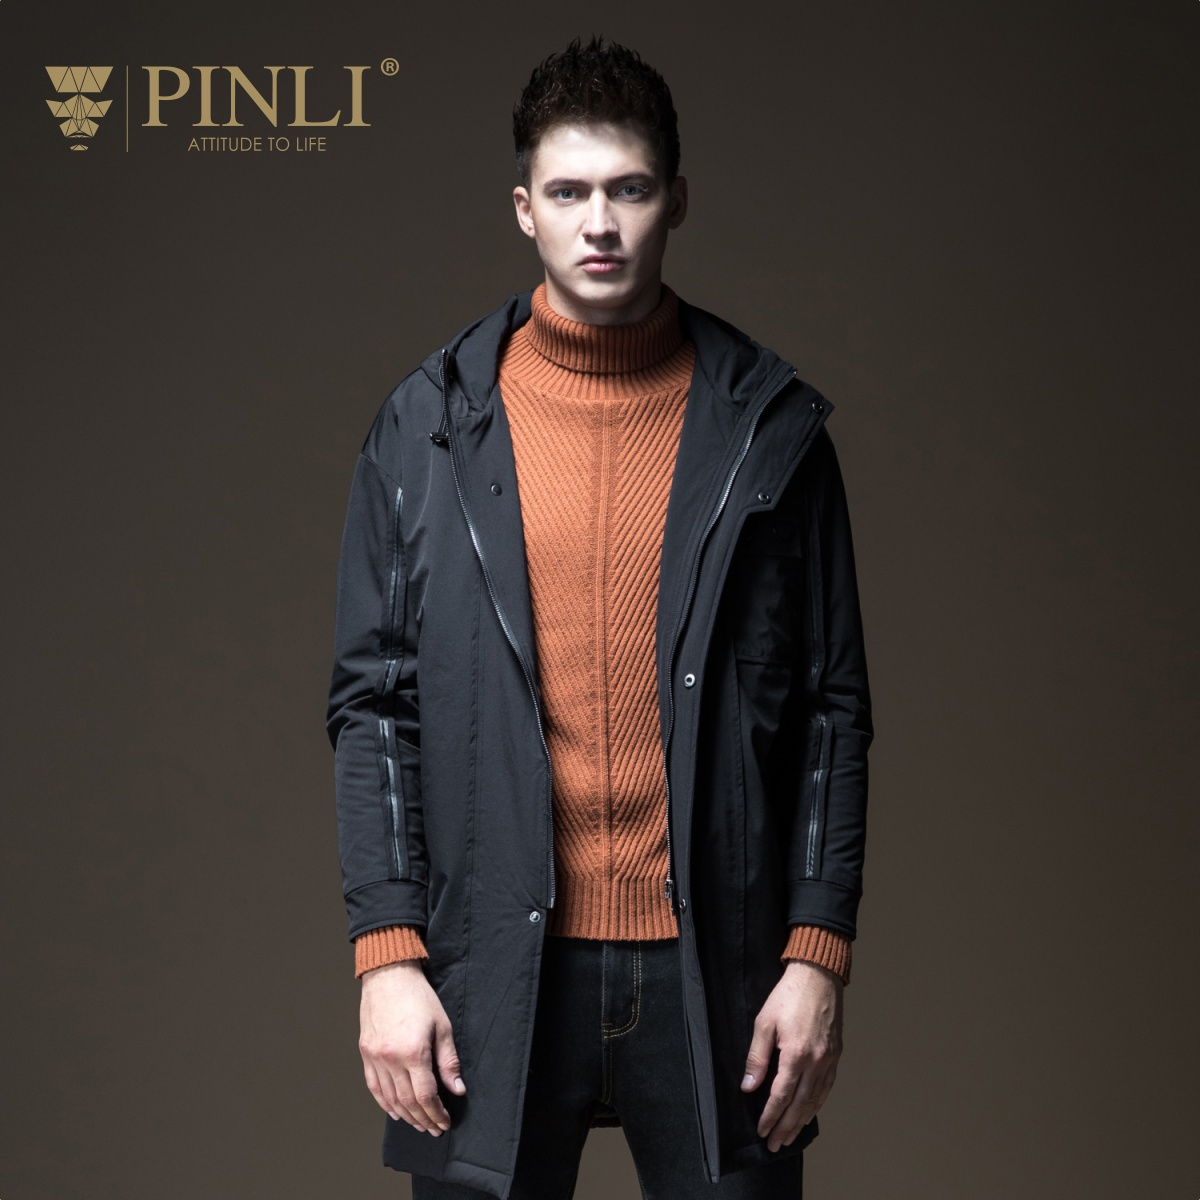 Mens Winter Jackets Winter Jacket Men Hot Sale Chaquetas Hombre Pinli Pin Li New Men's Suit, Long Hat, Coat, Chao B184105582